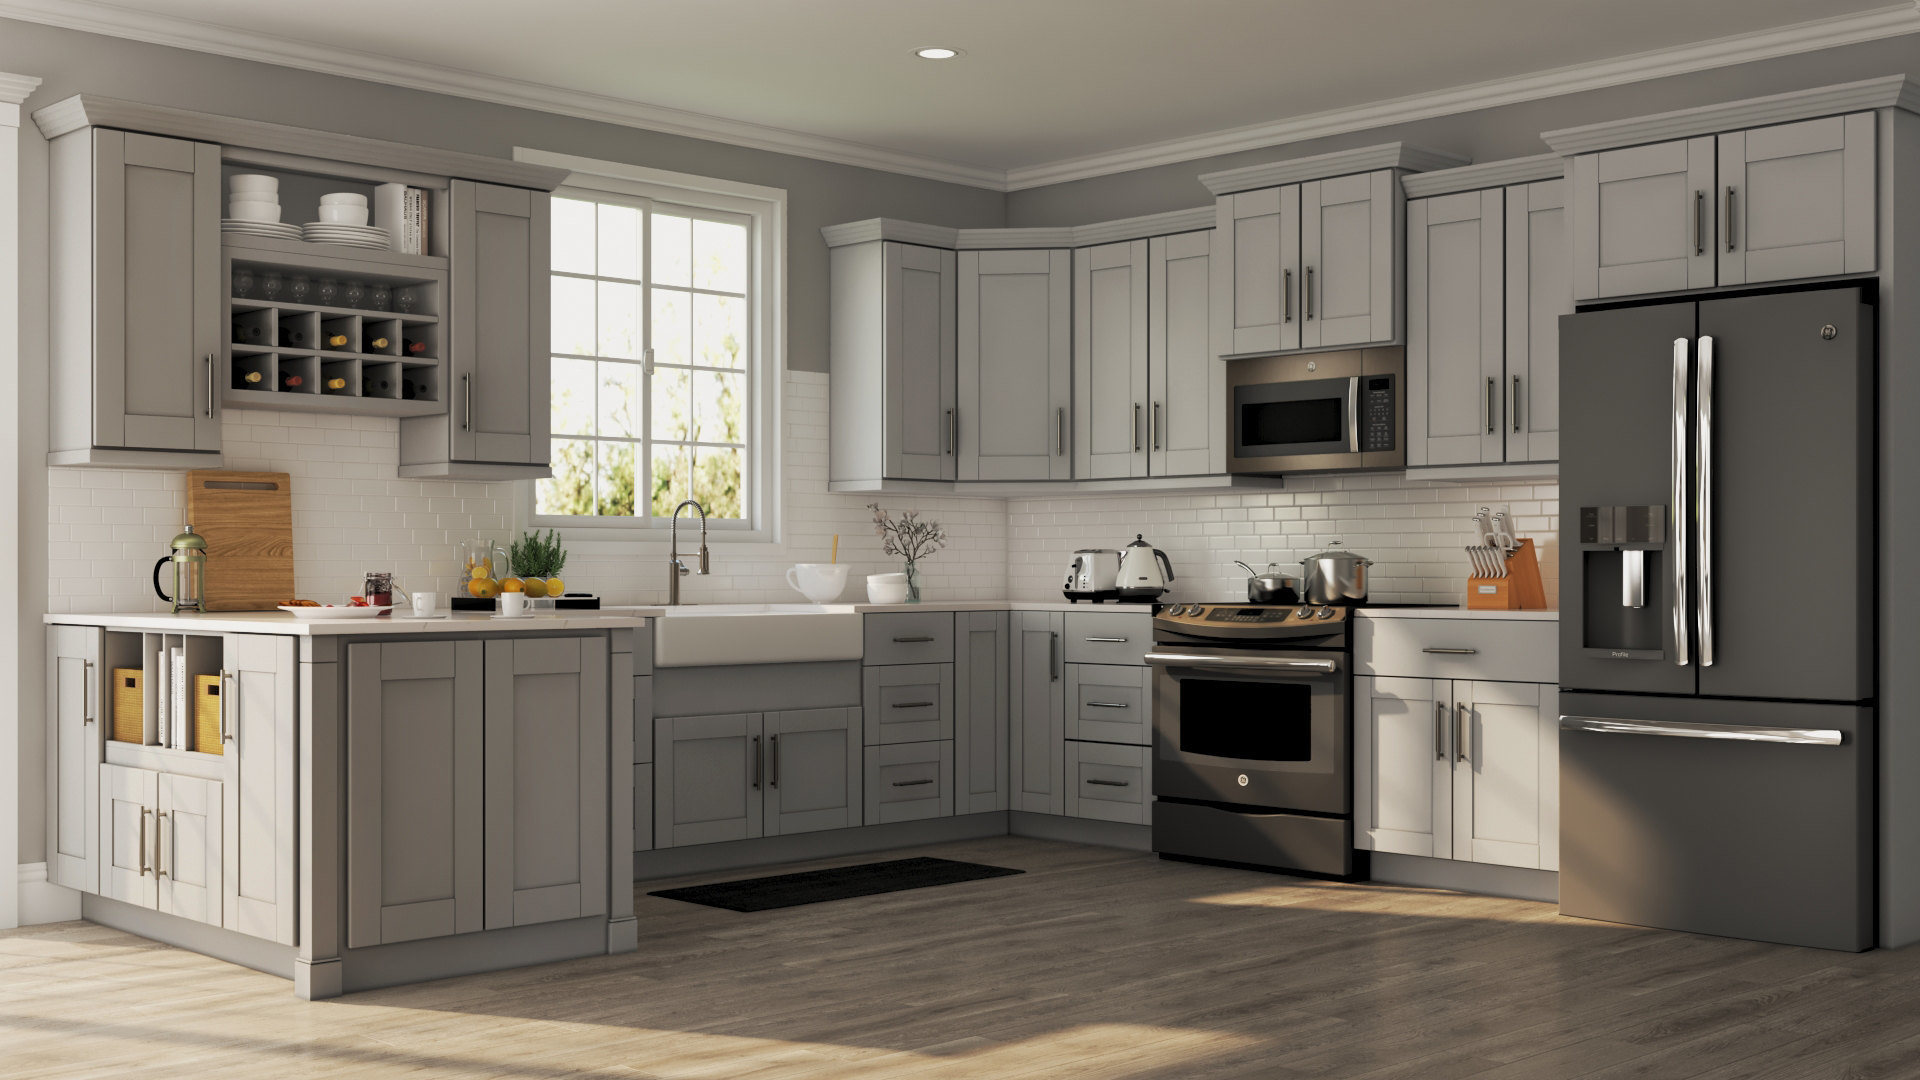 Electrical Plan Shaker Wall Cabinets In Dove Gray Kitchen The Home Depot